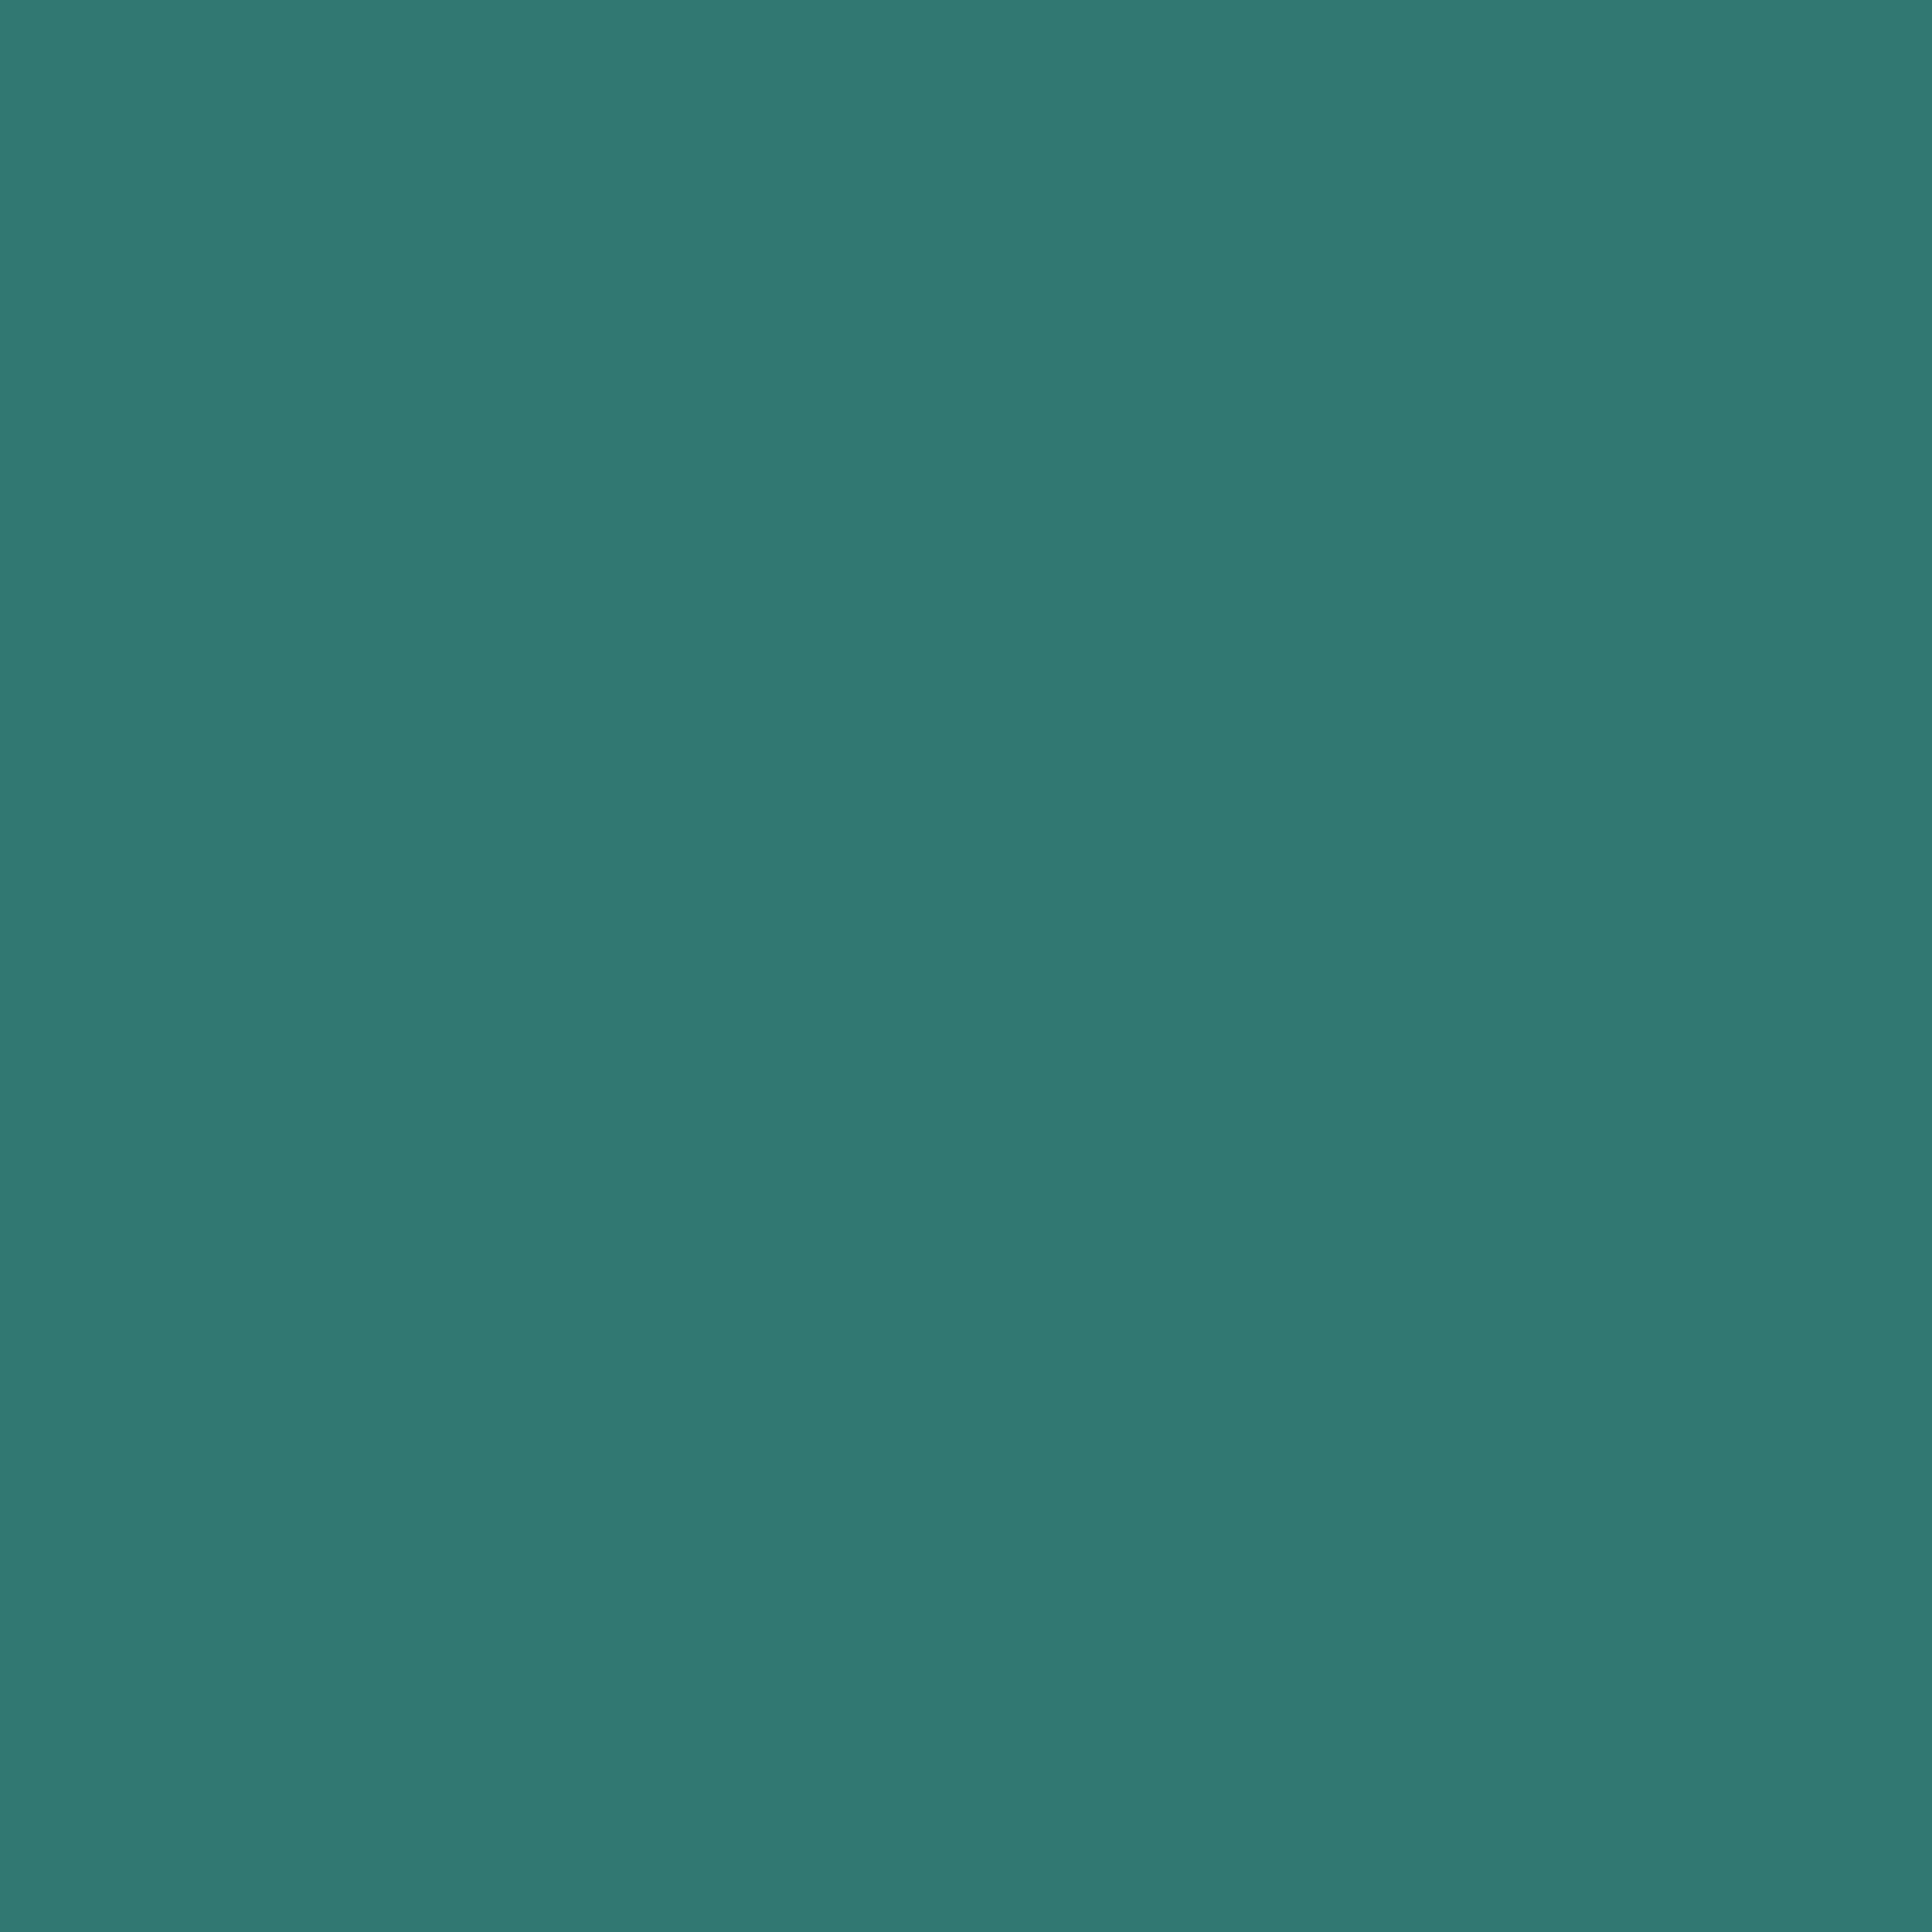 3600x3600 Myrtle Green Solid Color Background